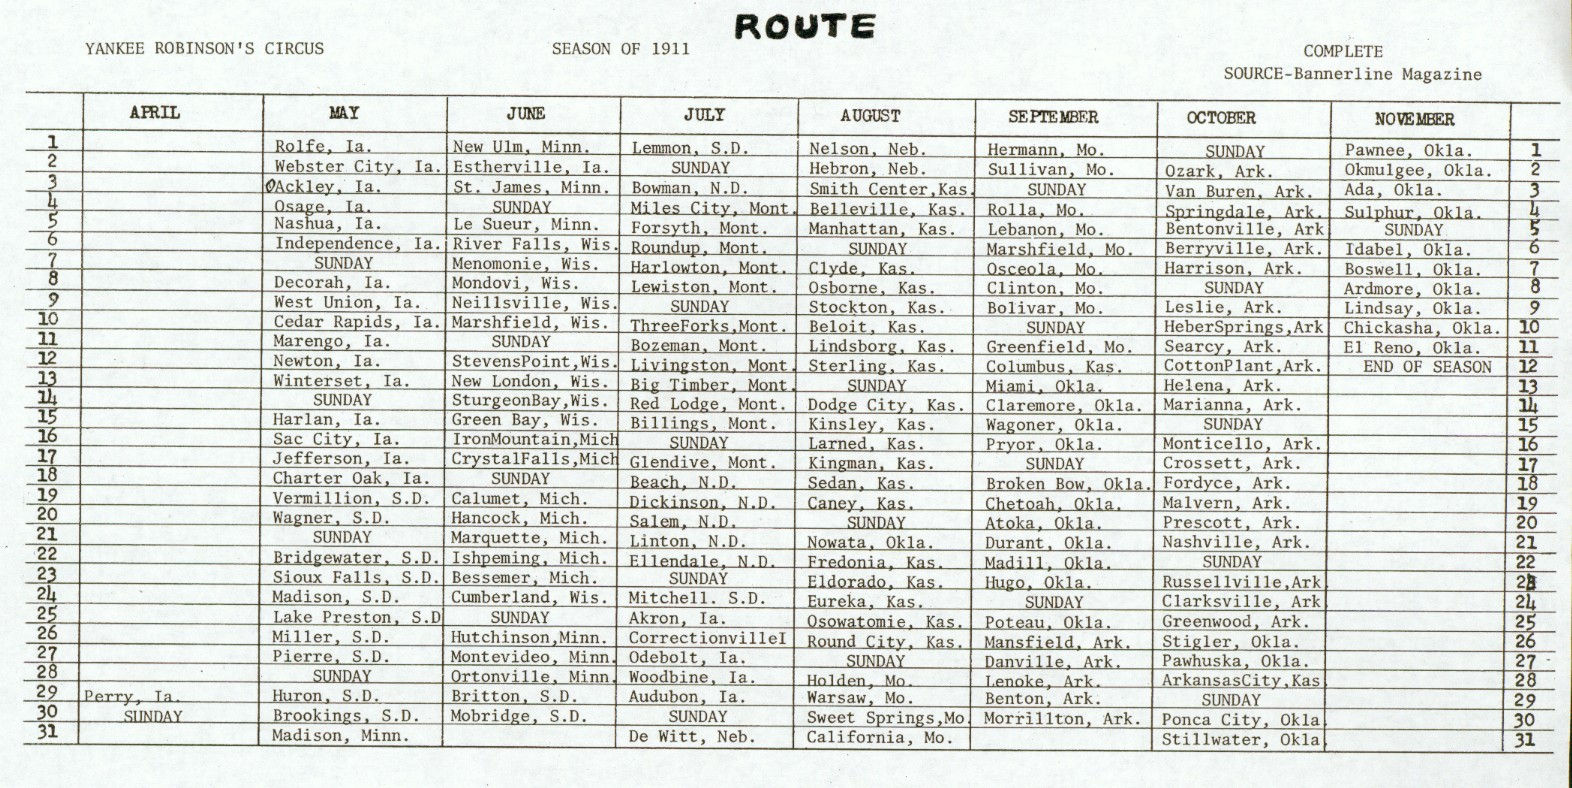 1911 Route, Yankee Robinson's Circus